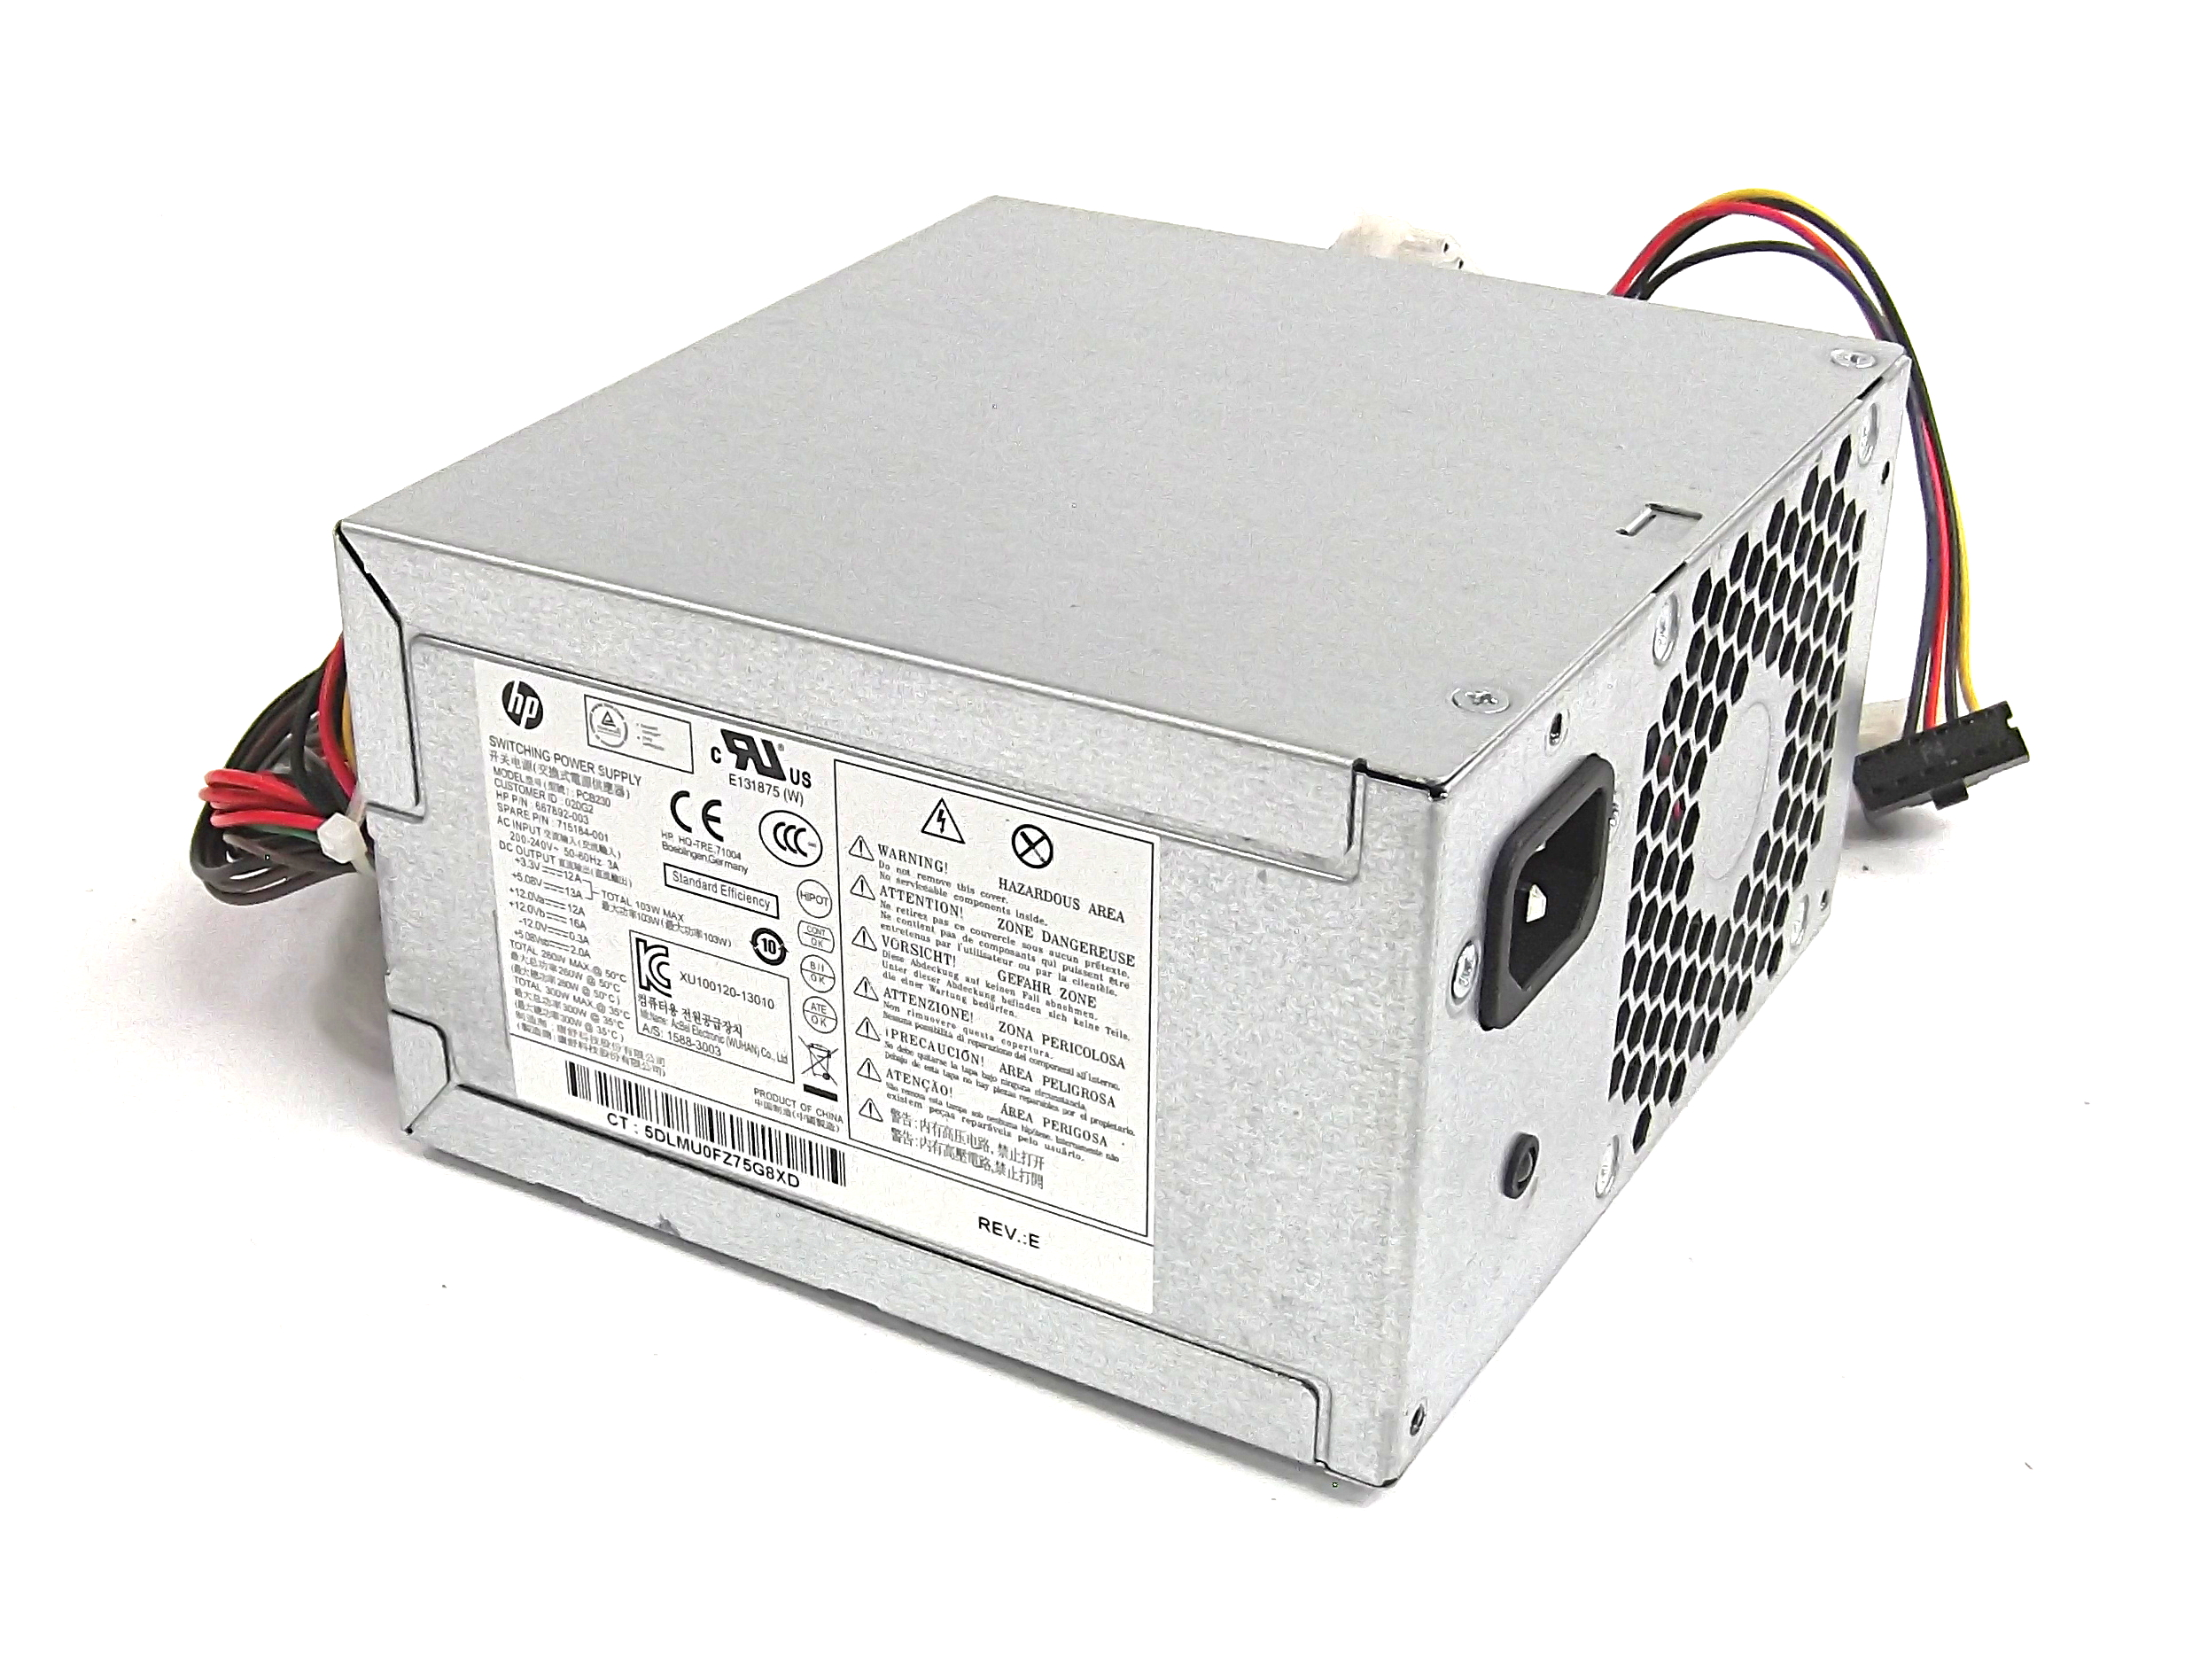 HP 667892-001 AcBel PCB230 300W ATX 24 Pin Power Supply